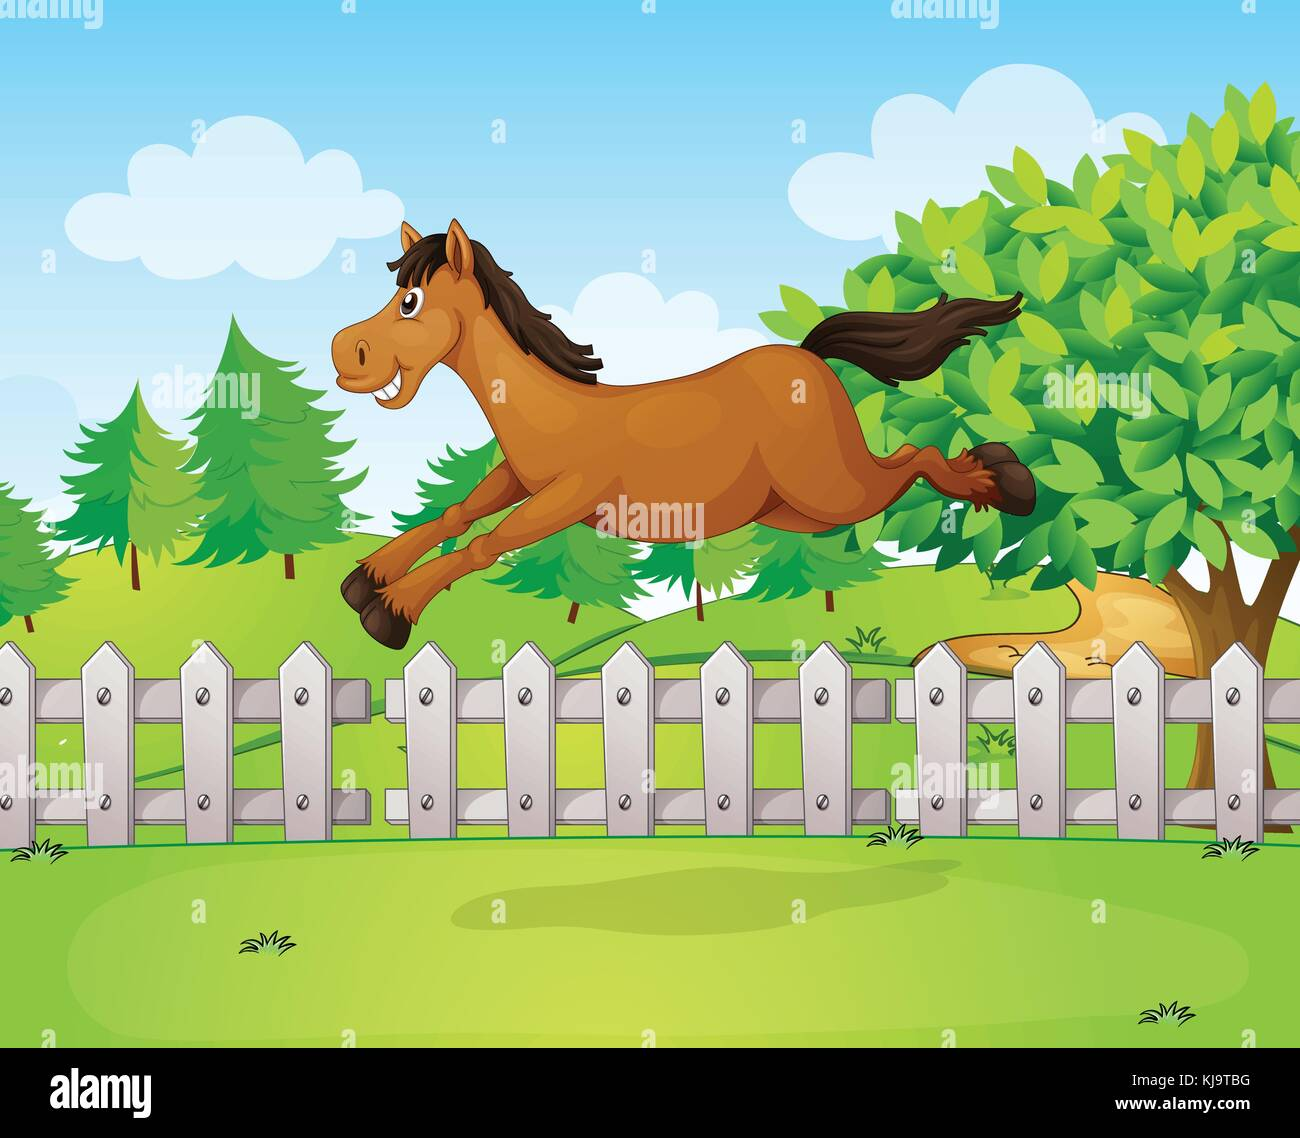 Illustration Of A Horse Jumping Over The Fence Stock Vector Image Art Alamy